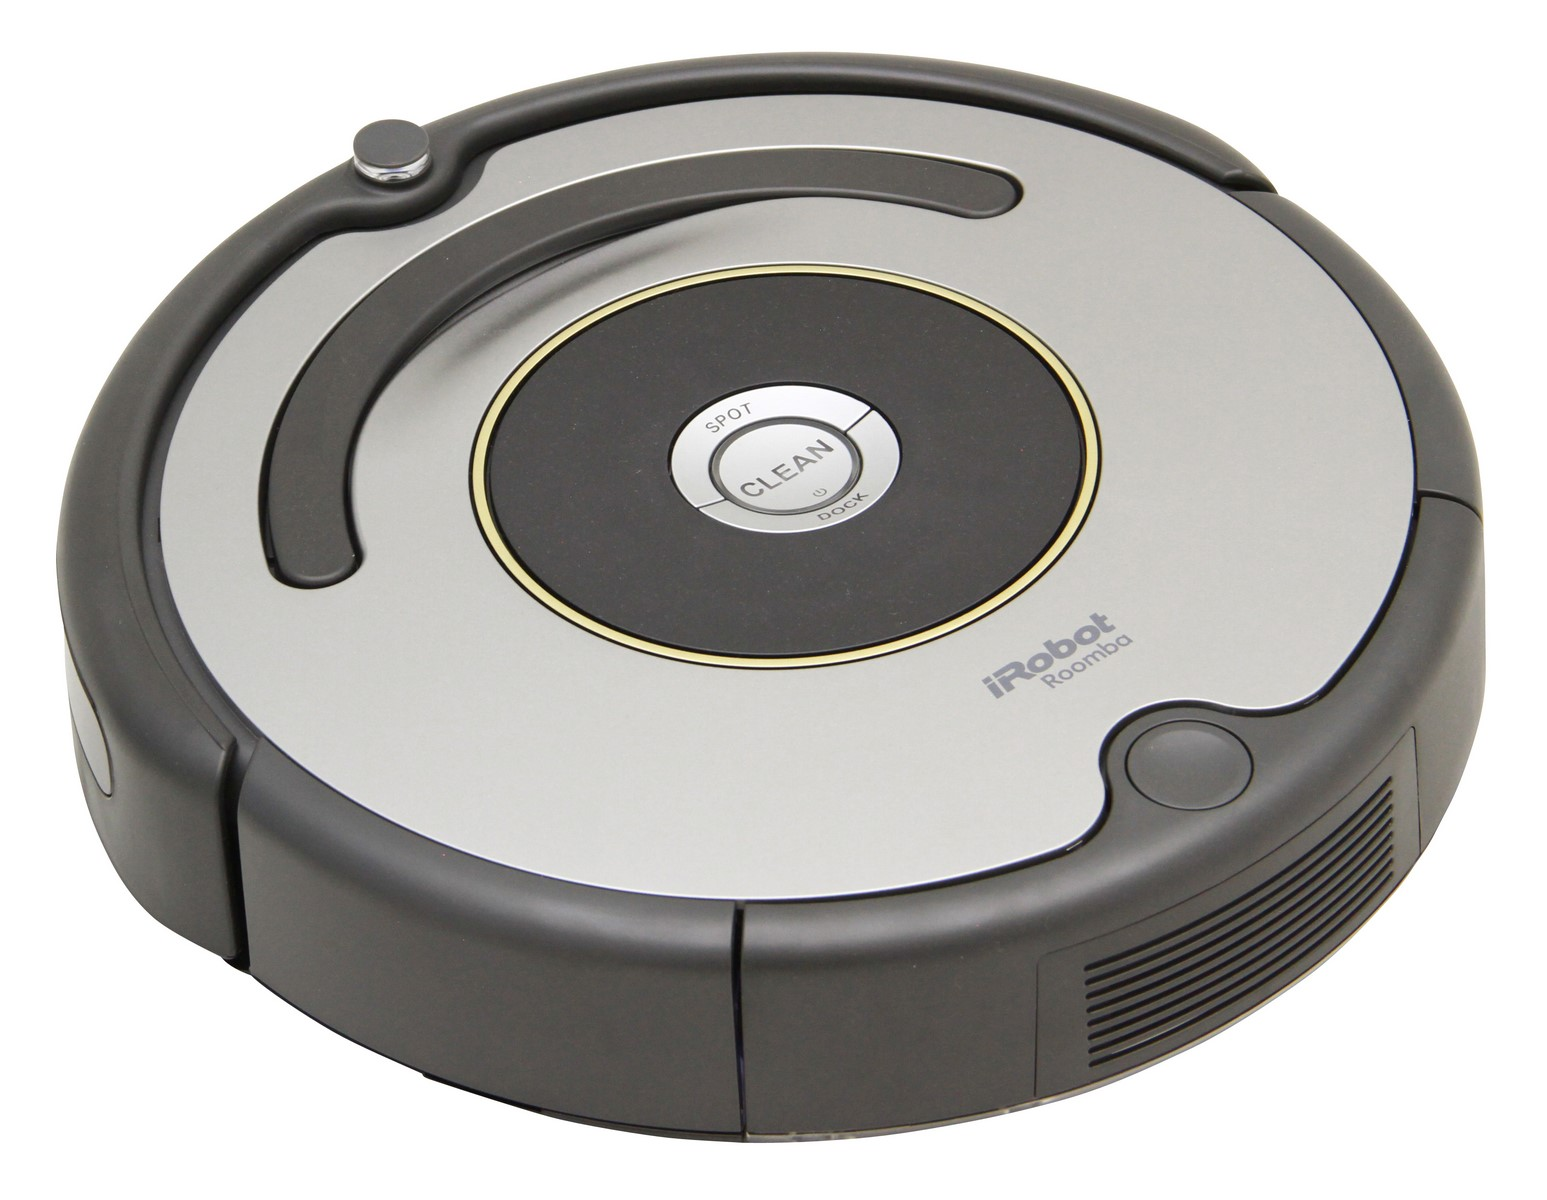 produit irobot roomba 615 frc. Black Bedroom Furniture Sets. Home Design Ideas